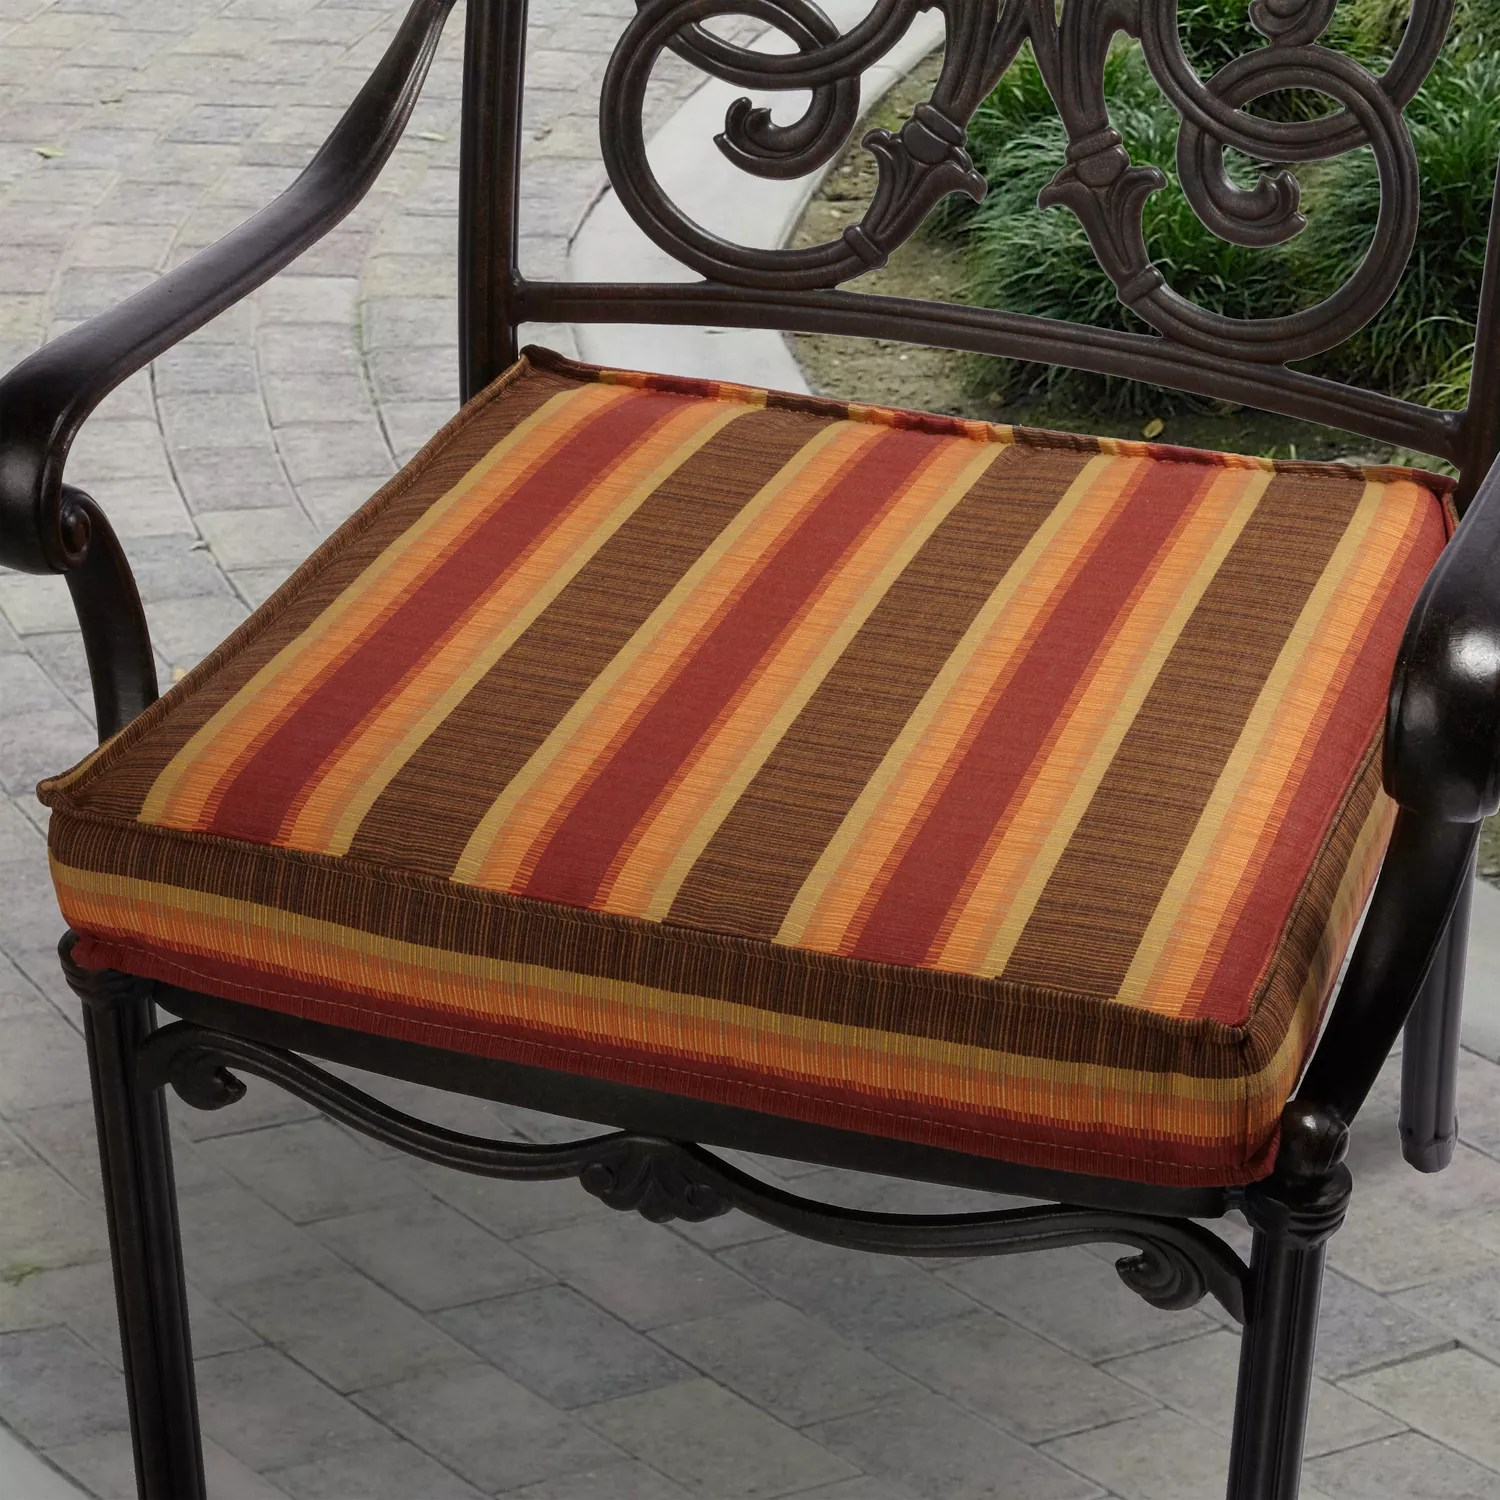 kohls outdoor chair cushions high back wing chairs sku klcs0958 mozaic sunbrella 19 in red striped cushion from